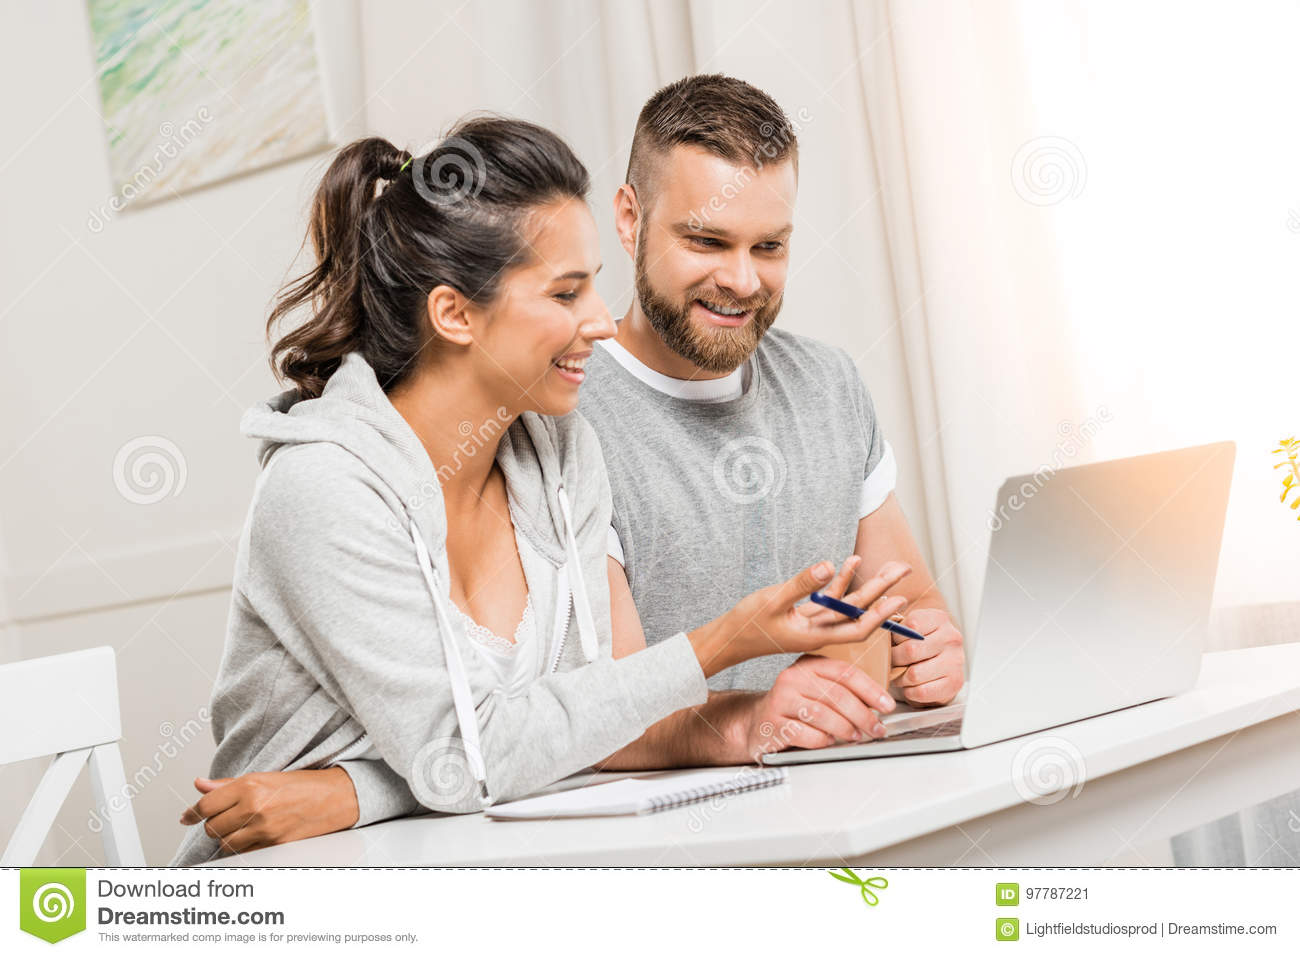 Smiling couple discussing project while working at home together